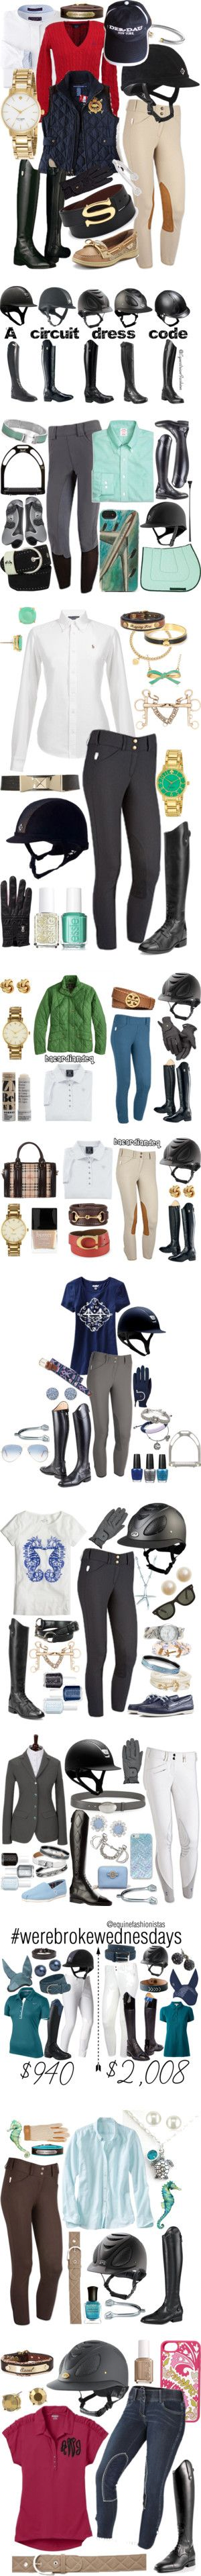 Equestrian by jumpers-eq on Polyvore featuring Beacon, Ralph Lauren Sport, Ralph Lauren, Ariat, C. Wonder, David Yurman, Kate Spade, Sperry Top-Sider, Roeckl and women's clothing